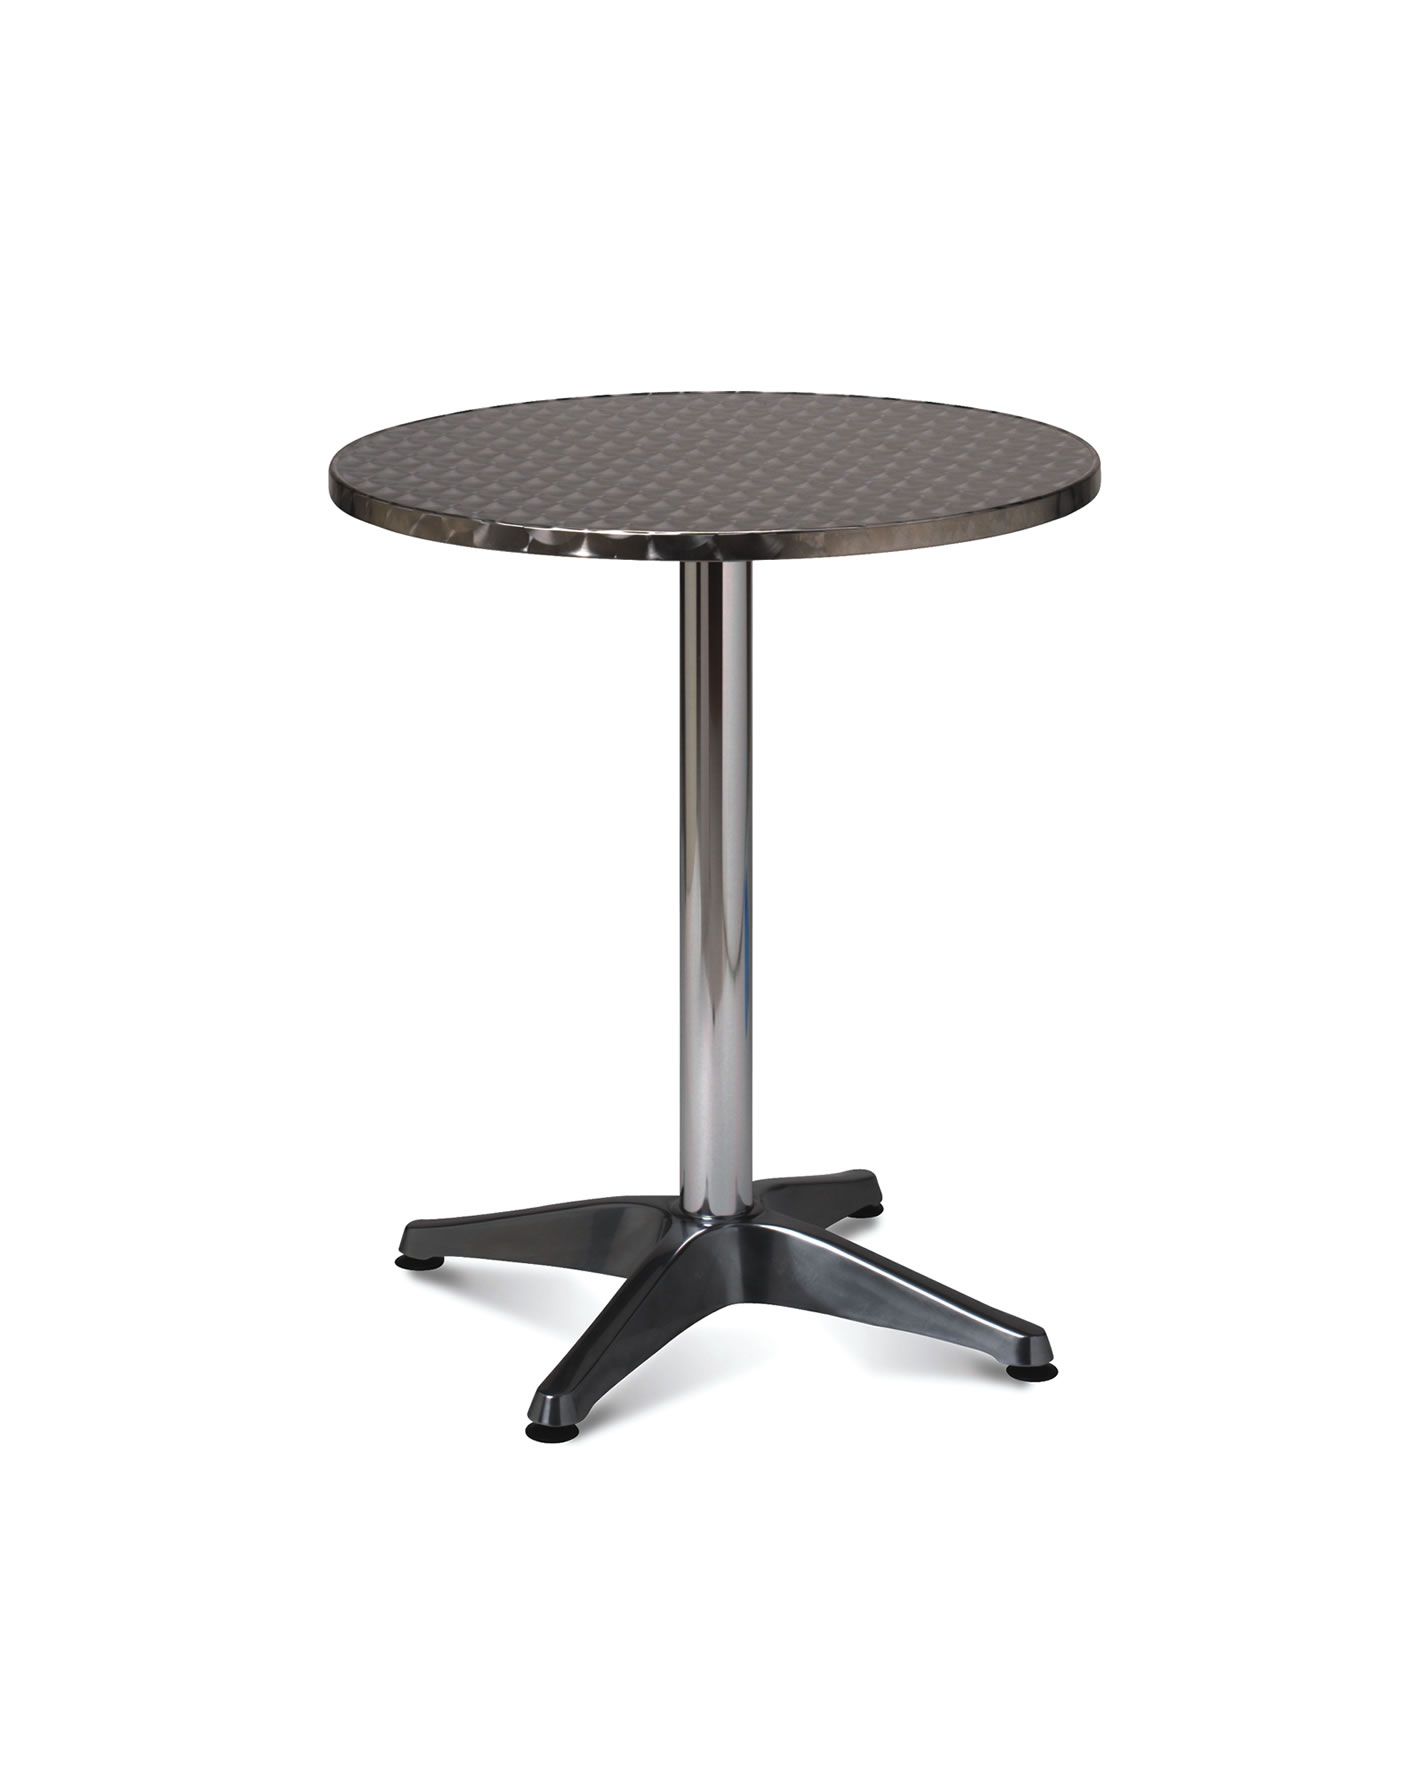 1898 ALUMINIUM ROUND TABLE 60CM